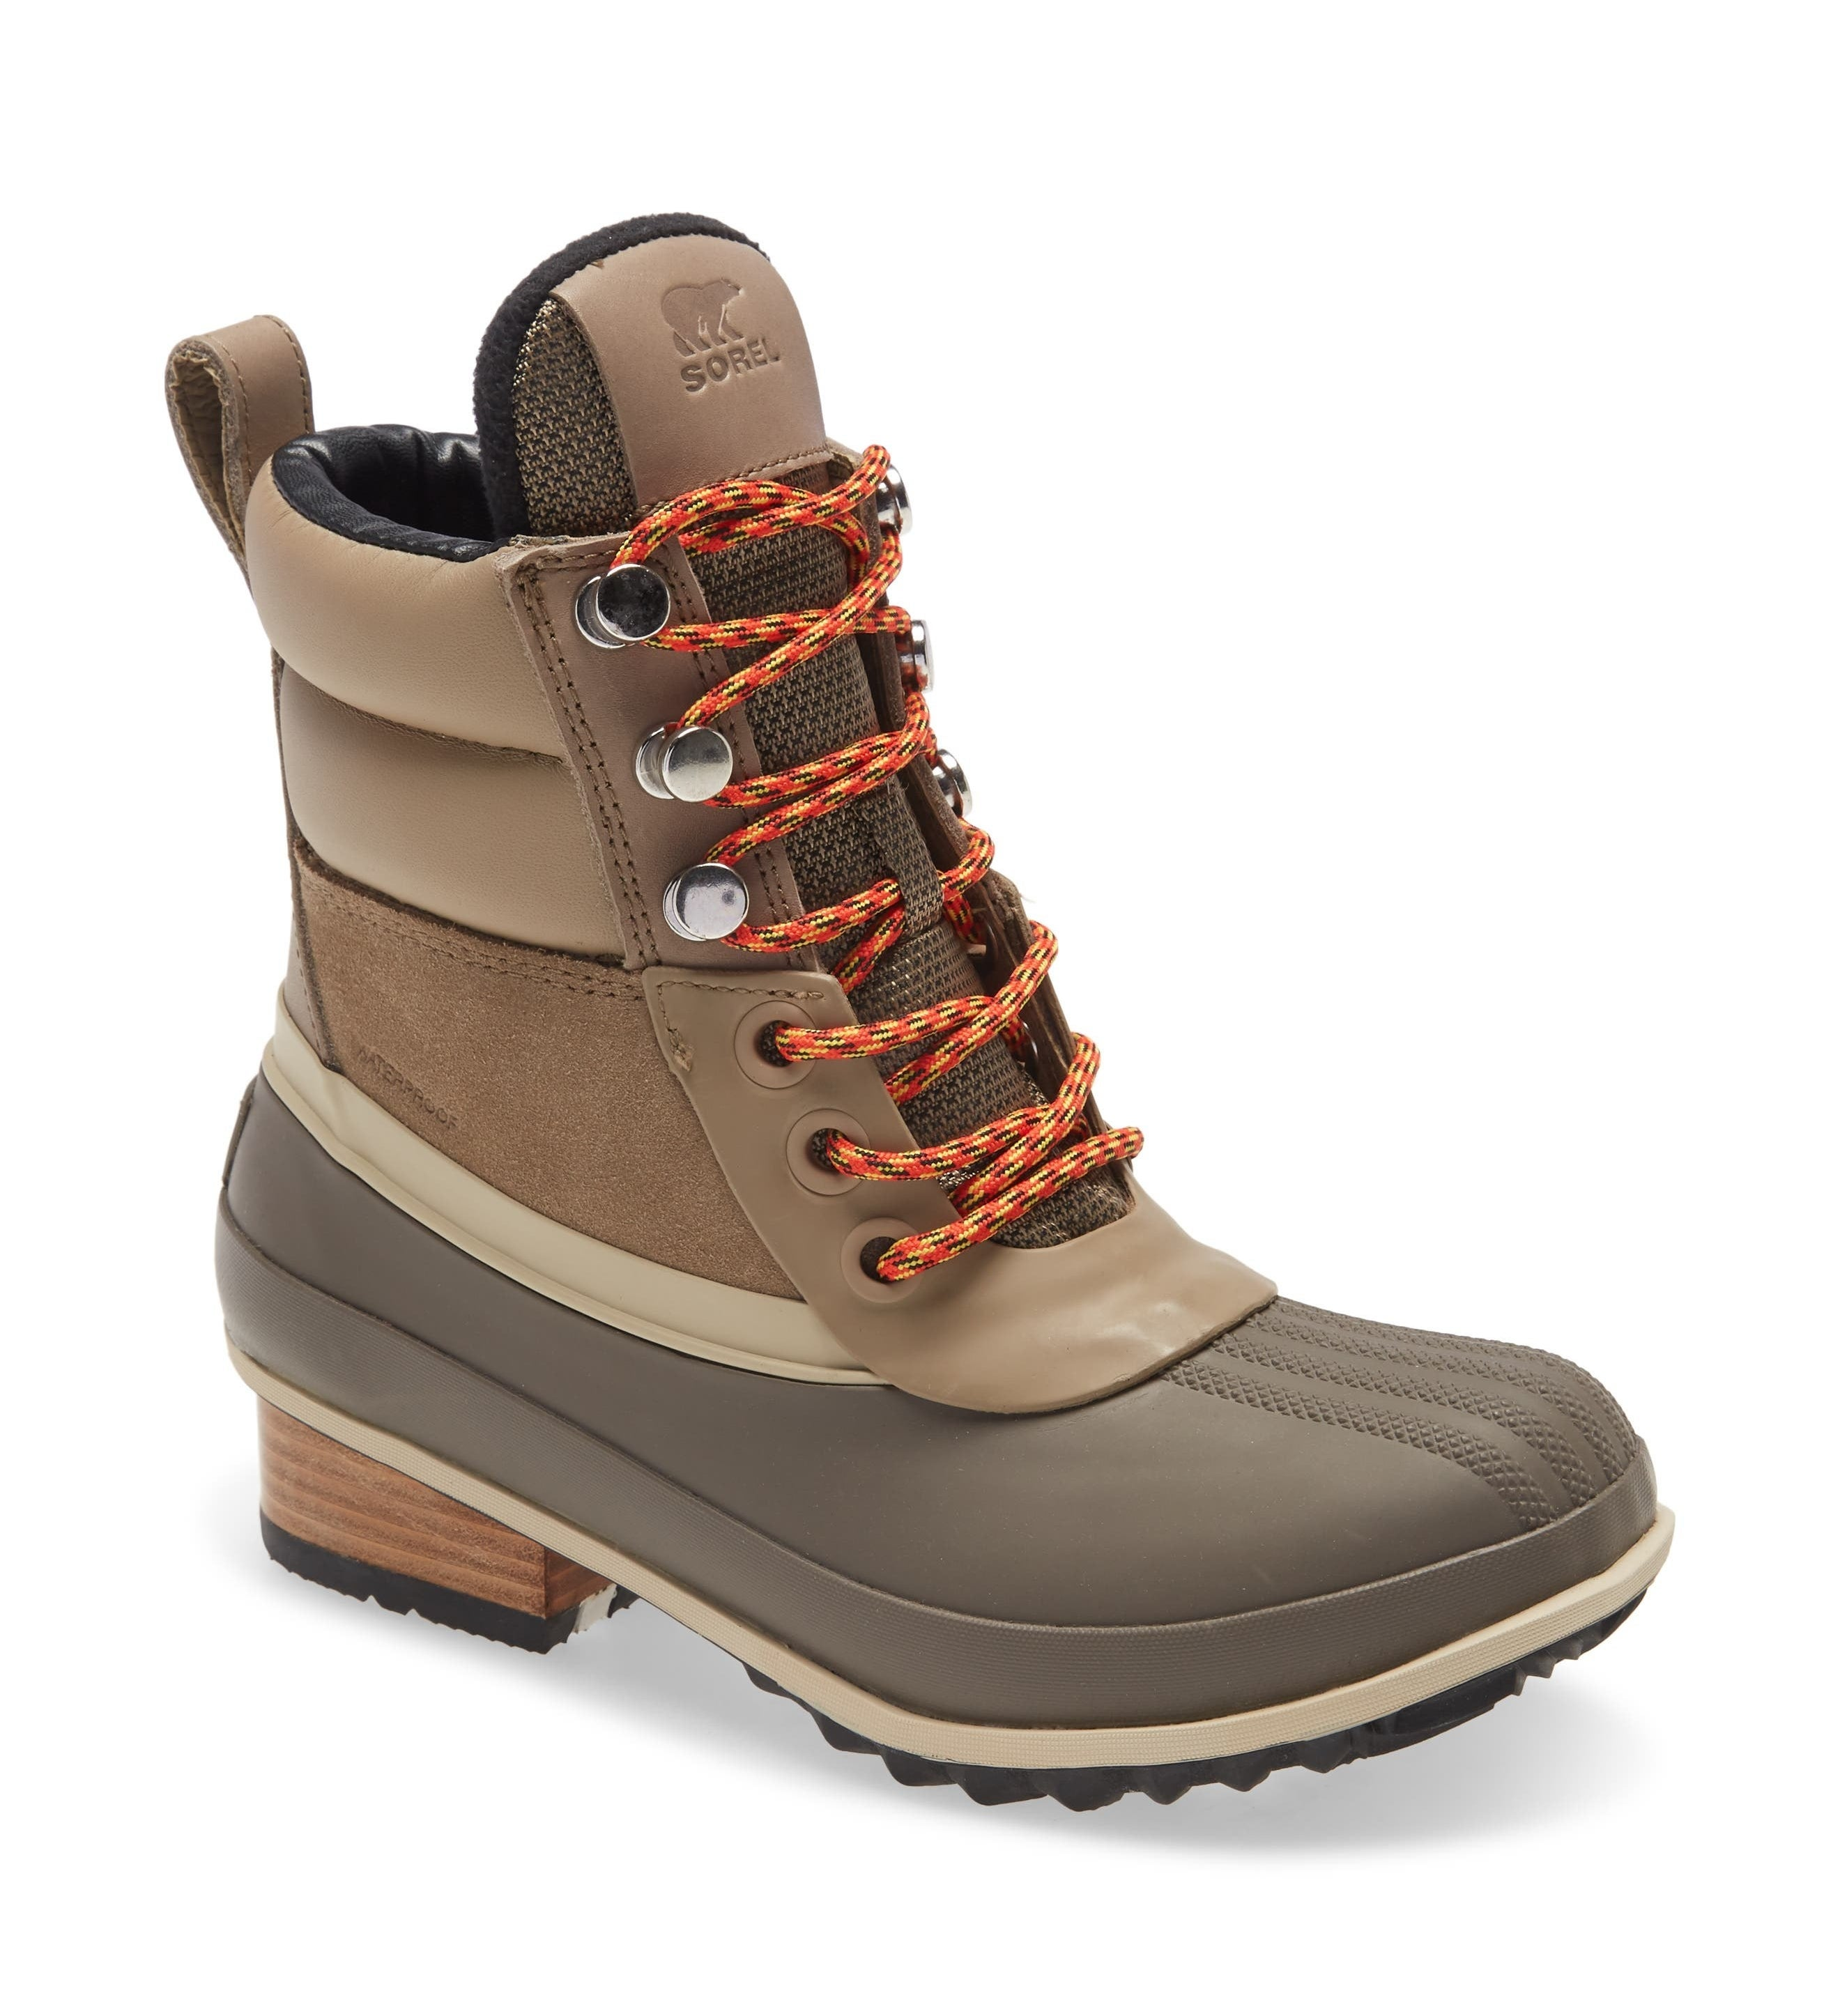 sorel waterproof hiking boot made with brown materials